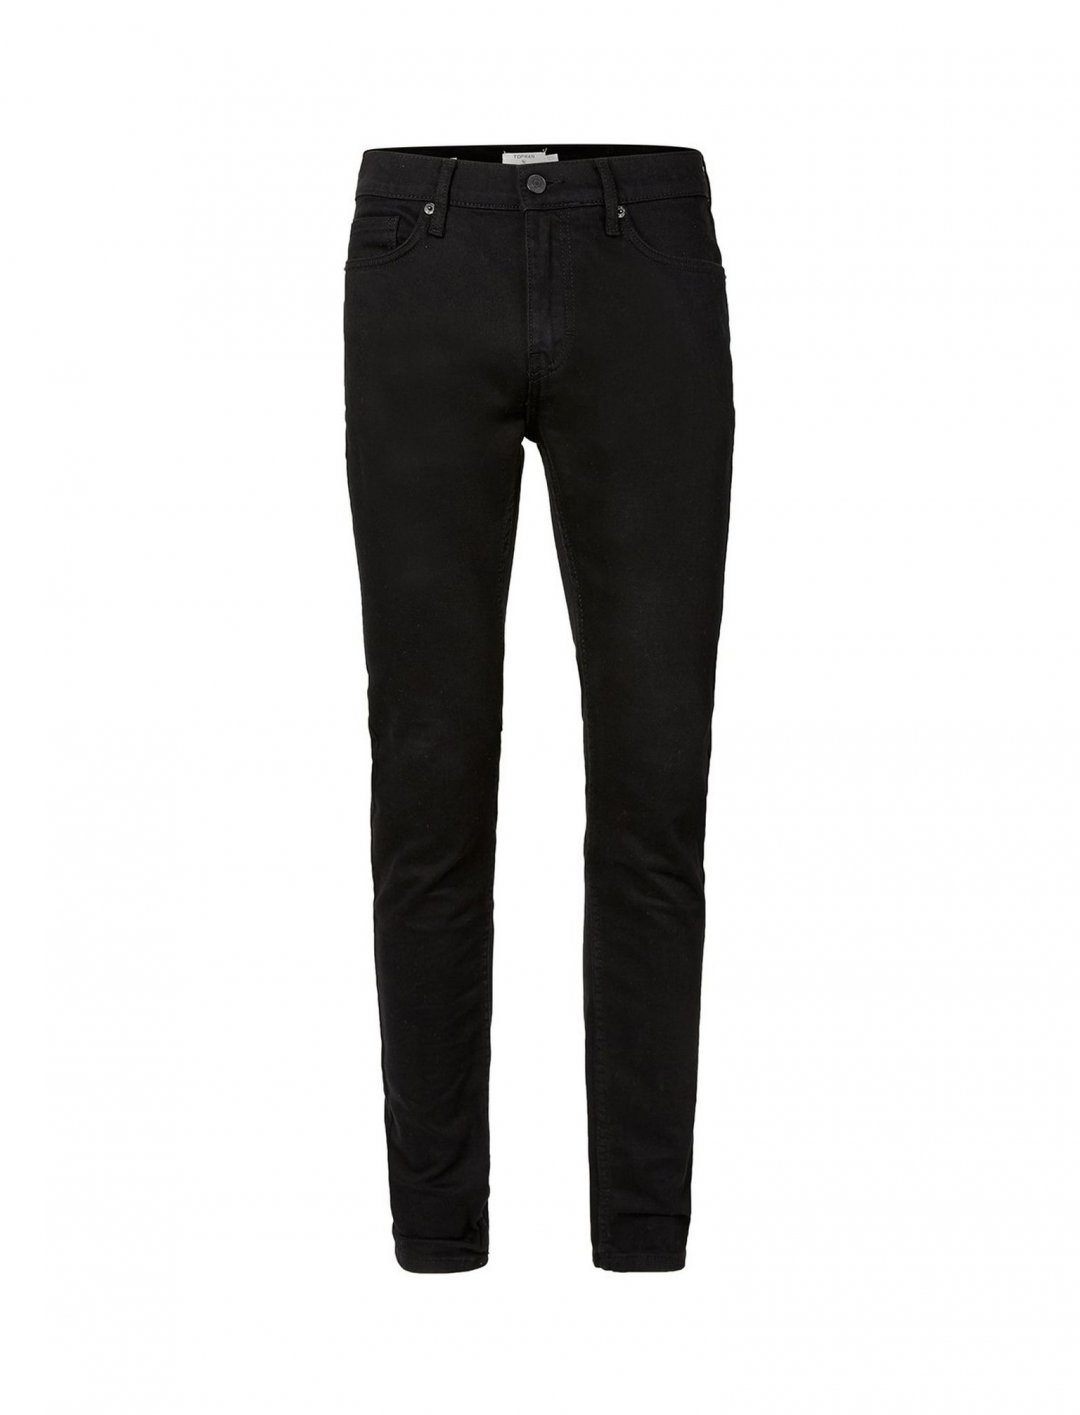 Ashley's Jeans Clothing Topman